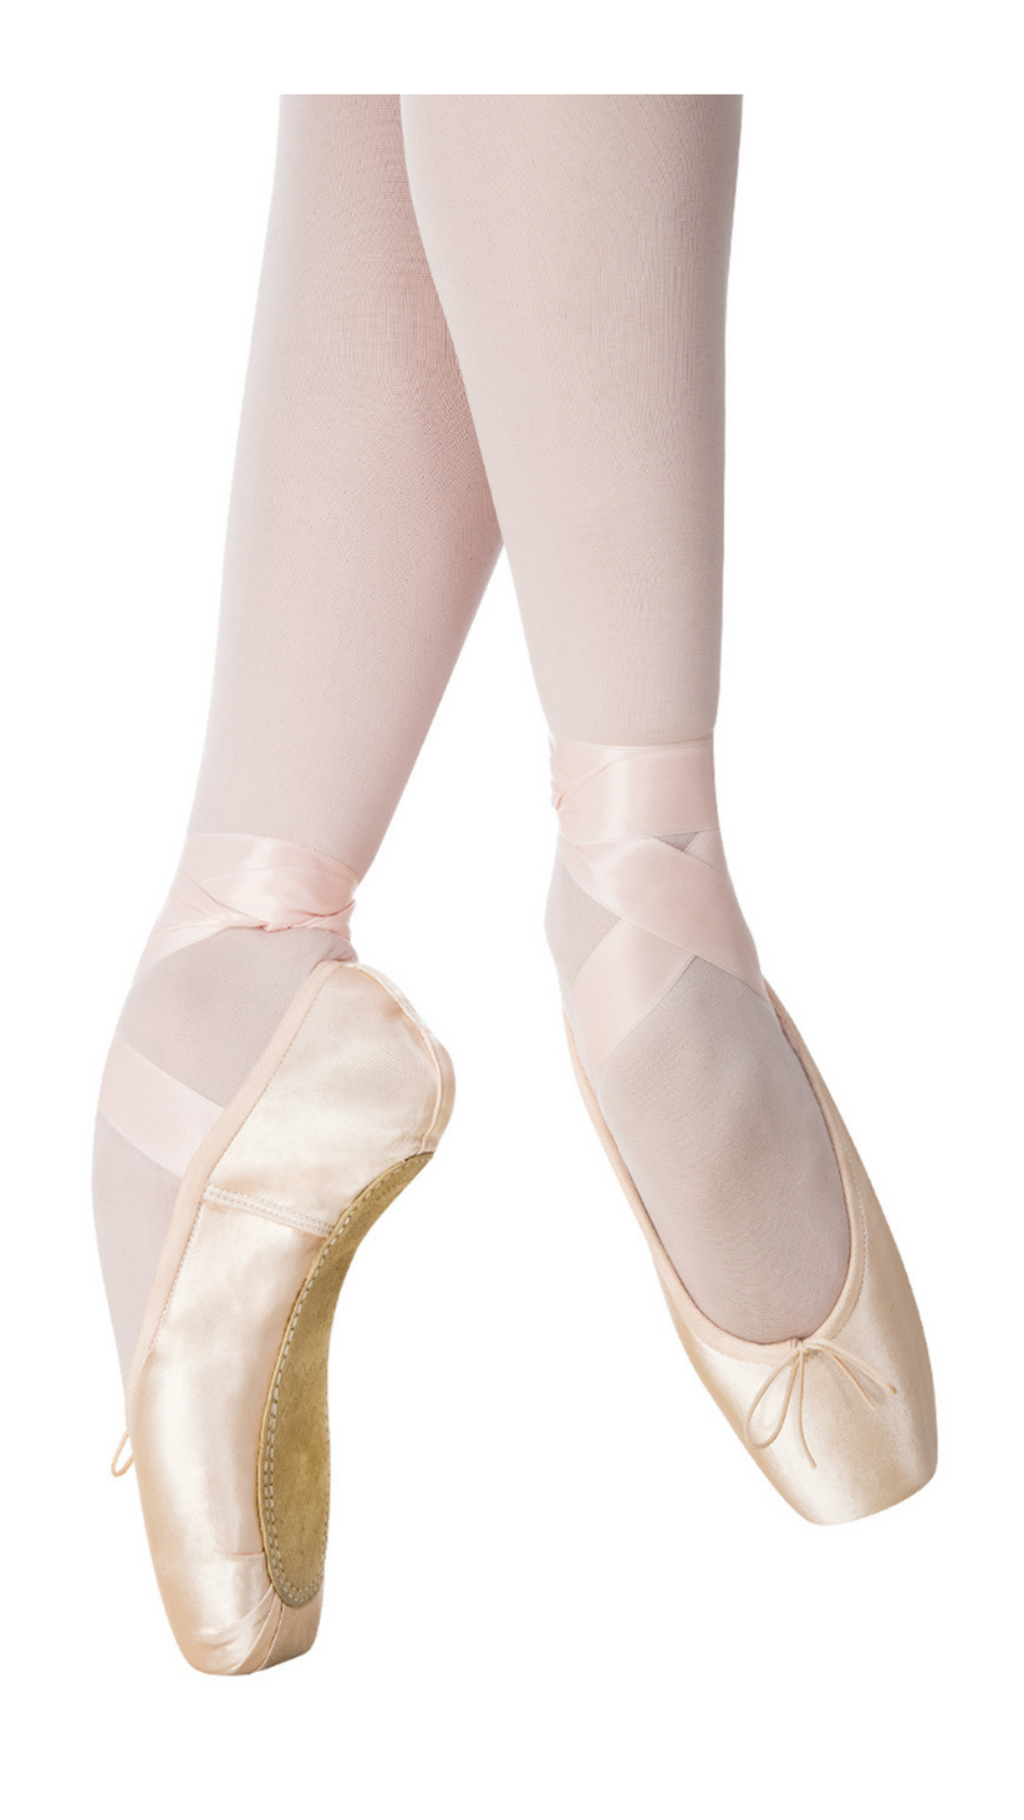 Nova Pointe Shoe - Soft Shank (S)